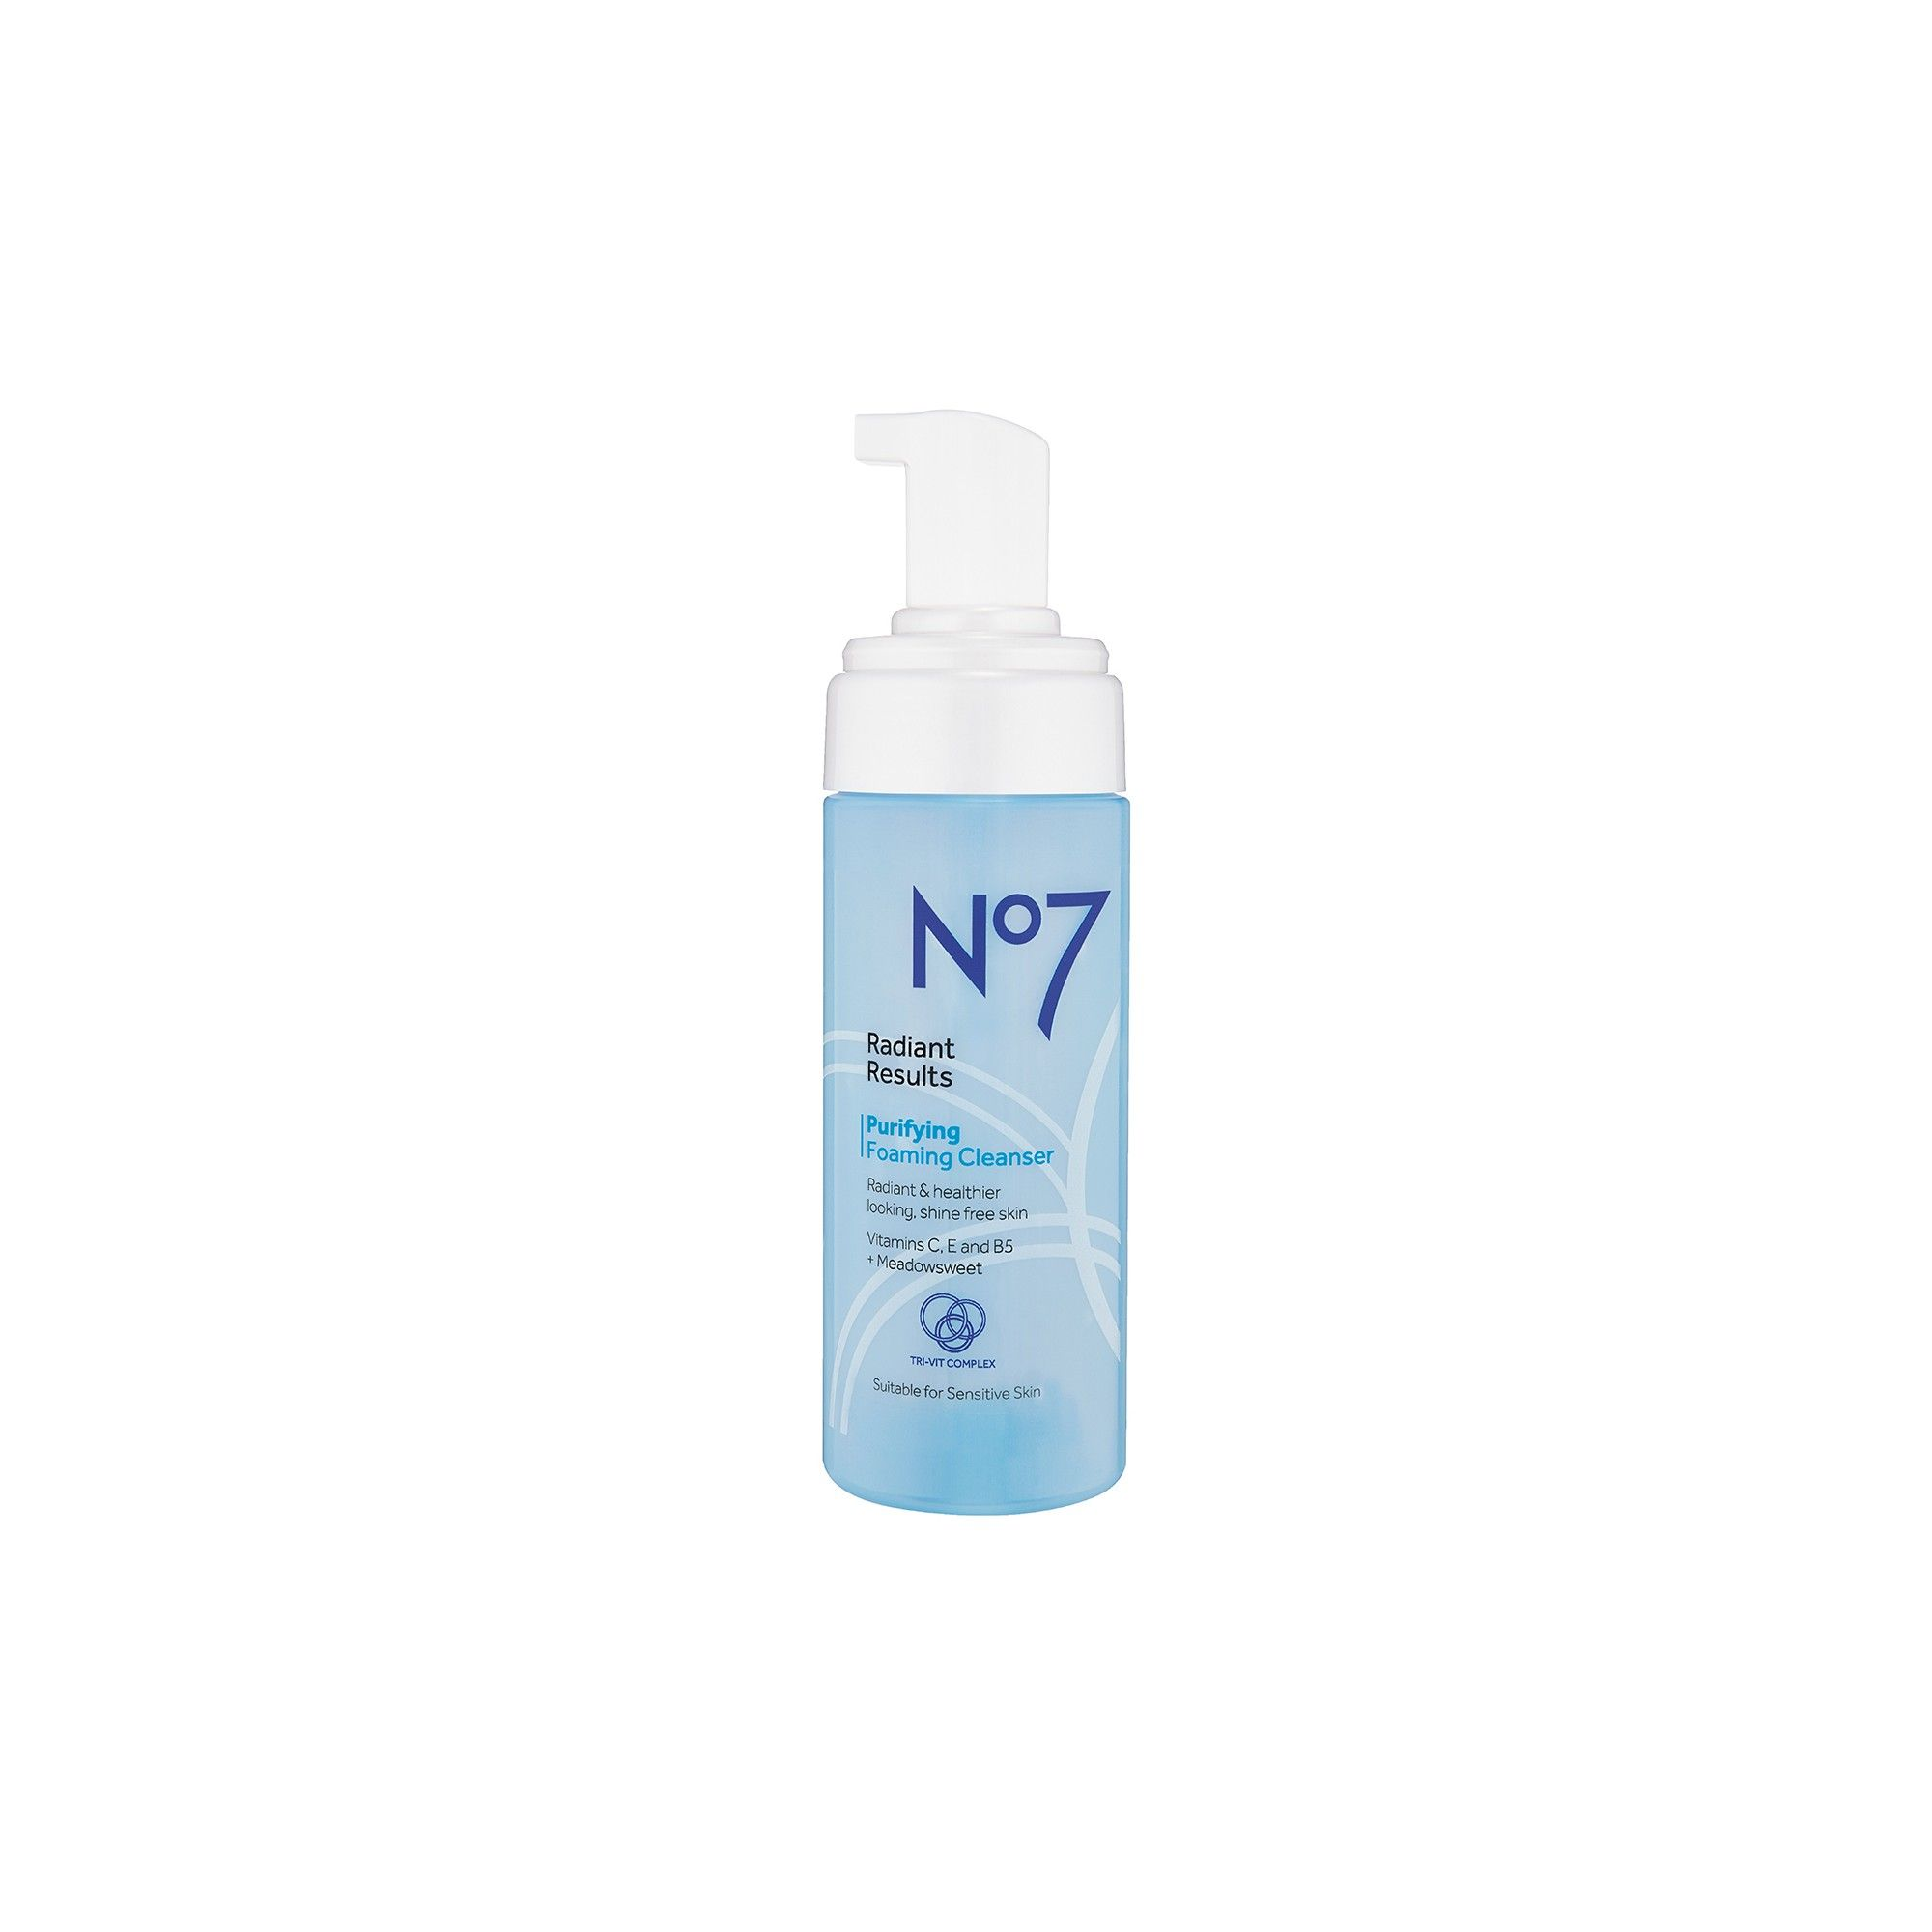 77694b39ffd0d No7 Radiant Results Purifying Foaming Cleanser - 5oz